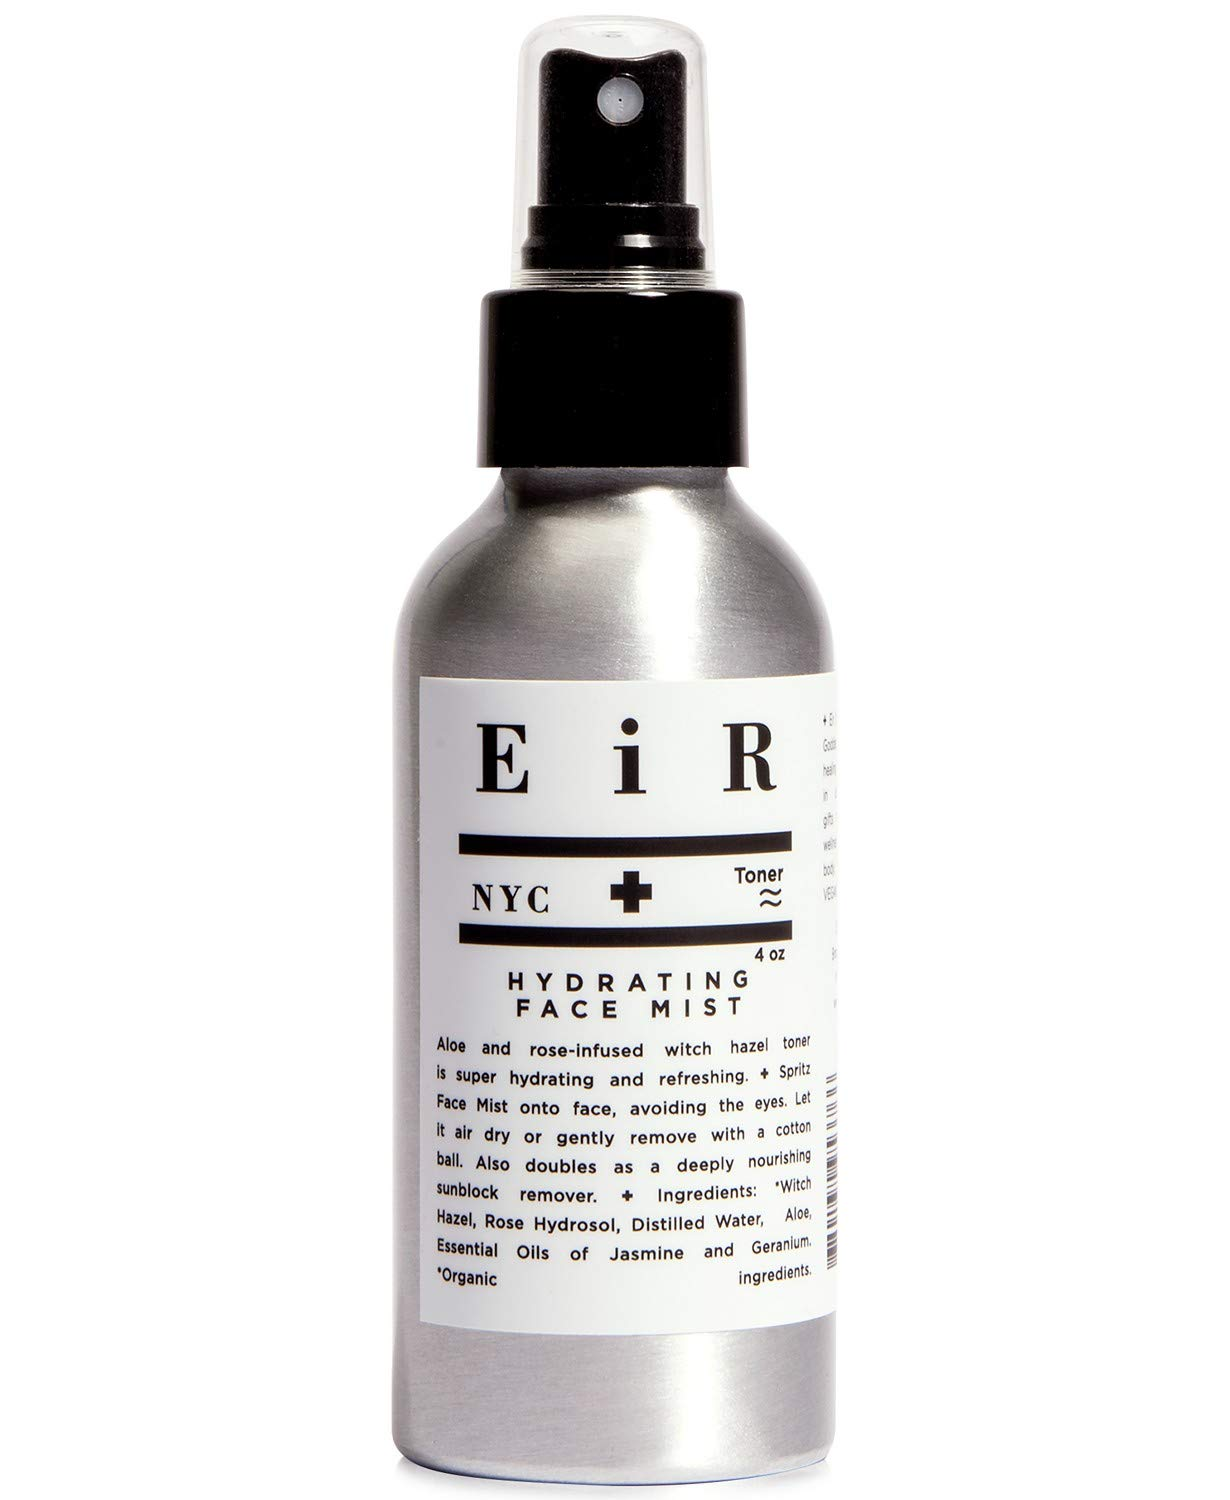 Eir Nyc Hydrating Face Mist - 4 Oz